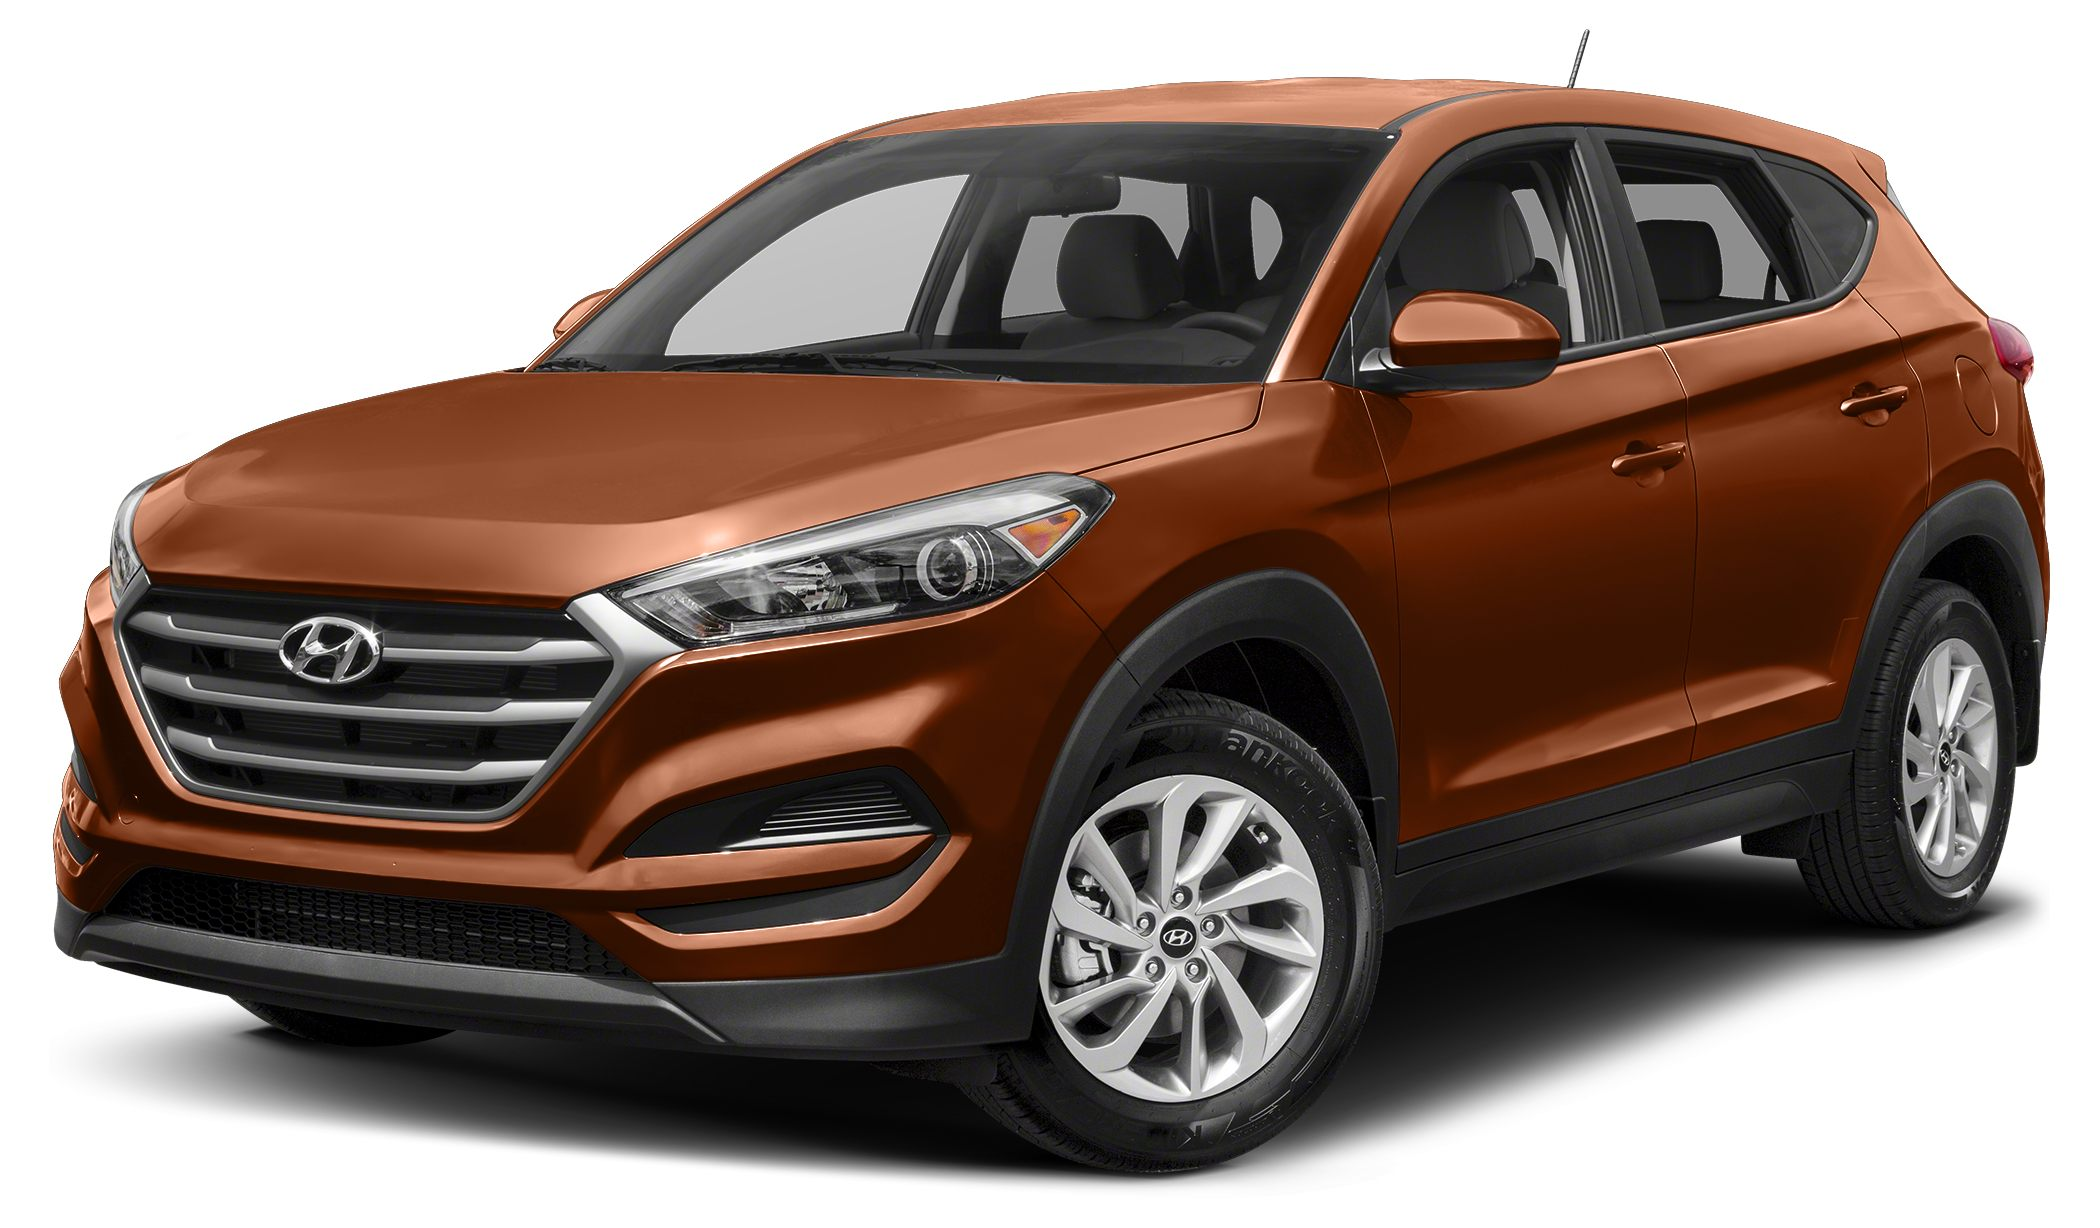 2016 Hyundai Tucson Sport 2016 Hyundai Tucson Sport in Black and One Year Free Maintanence The SU